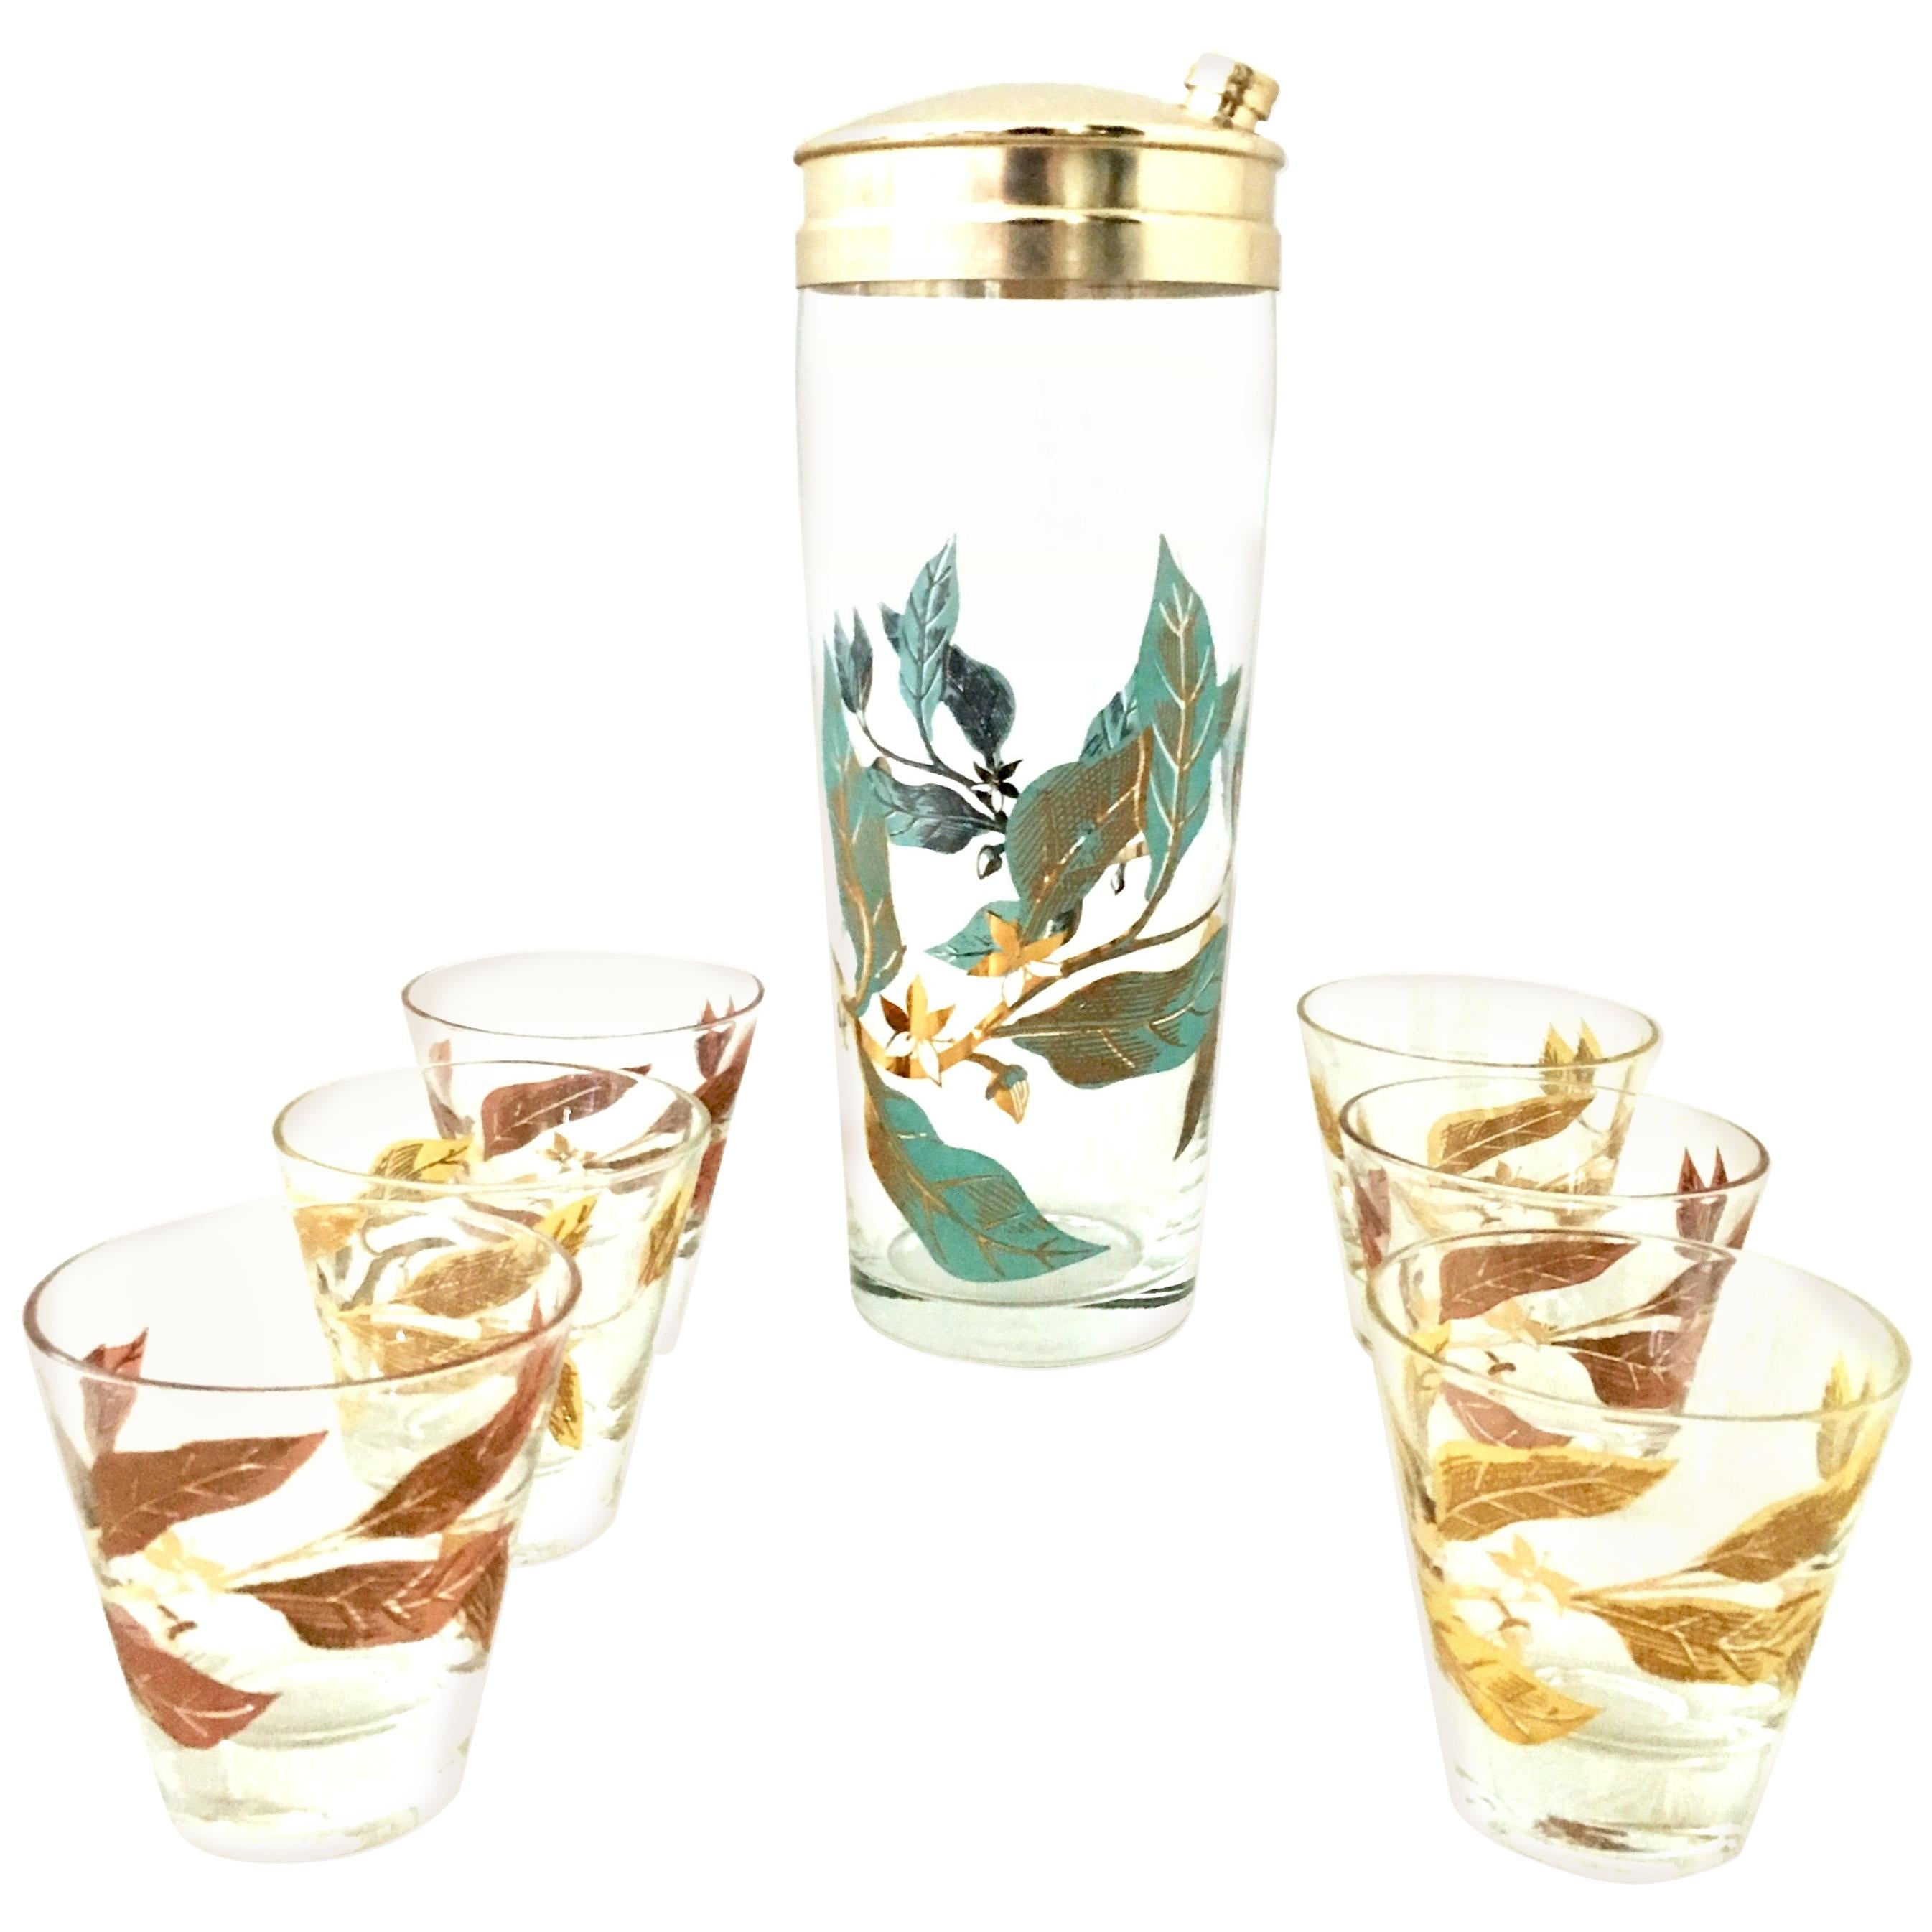 Mid-20th Century Blown Glass & 22-Karat Gold Printed Drinks Set of Seven Pieces